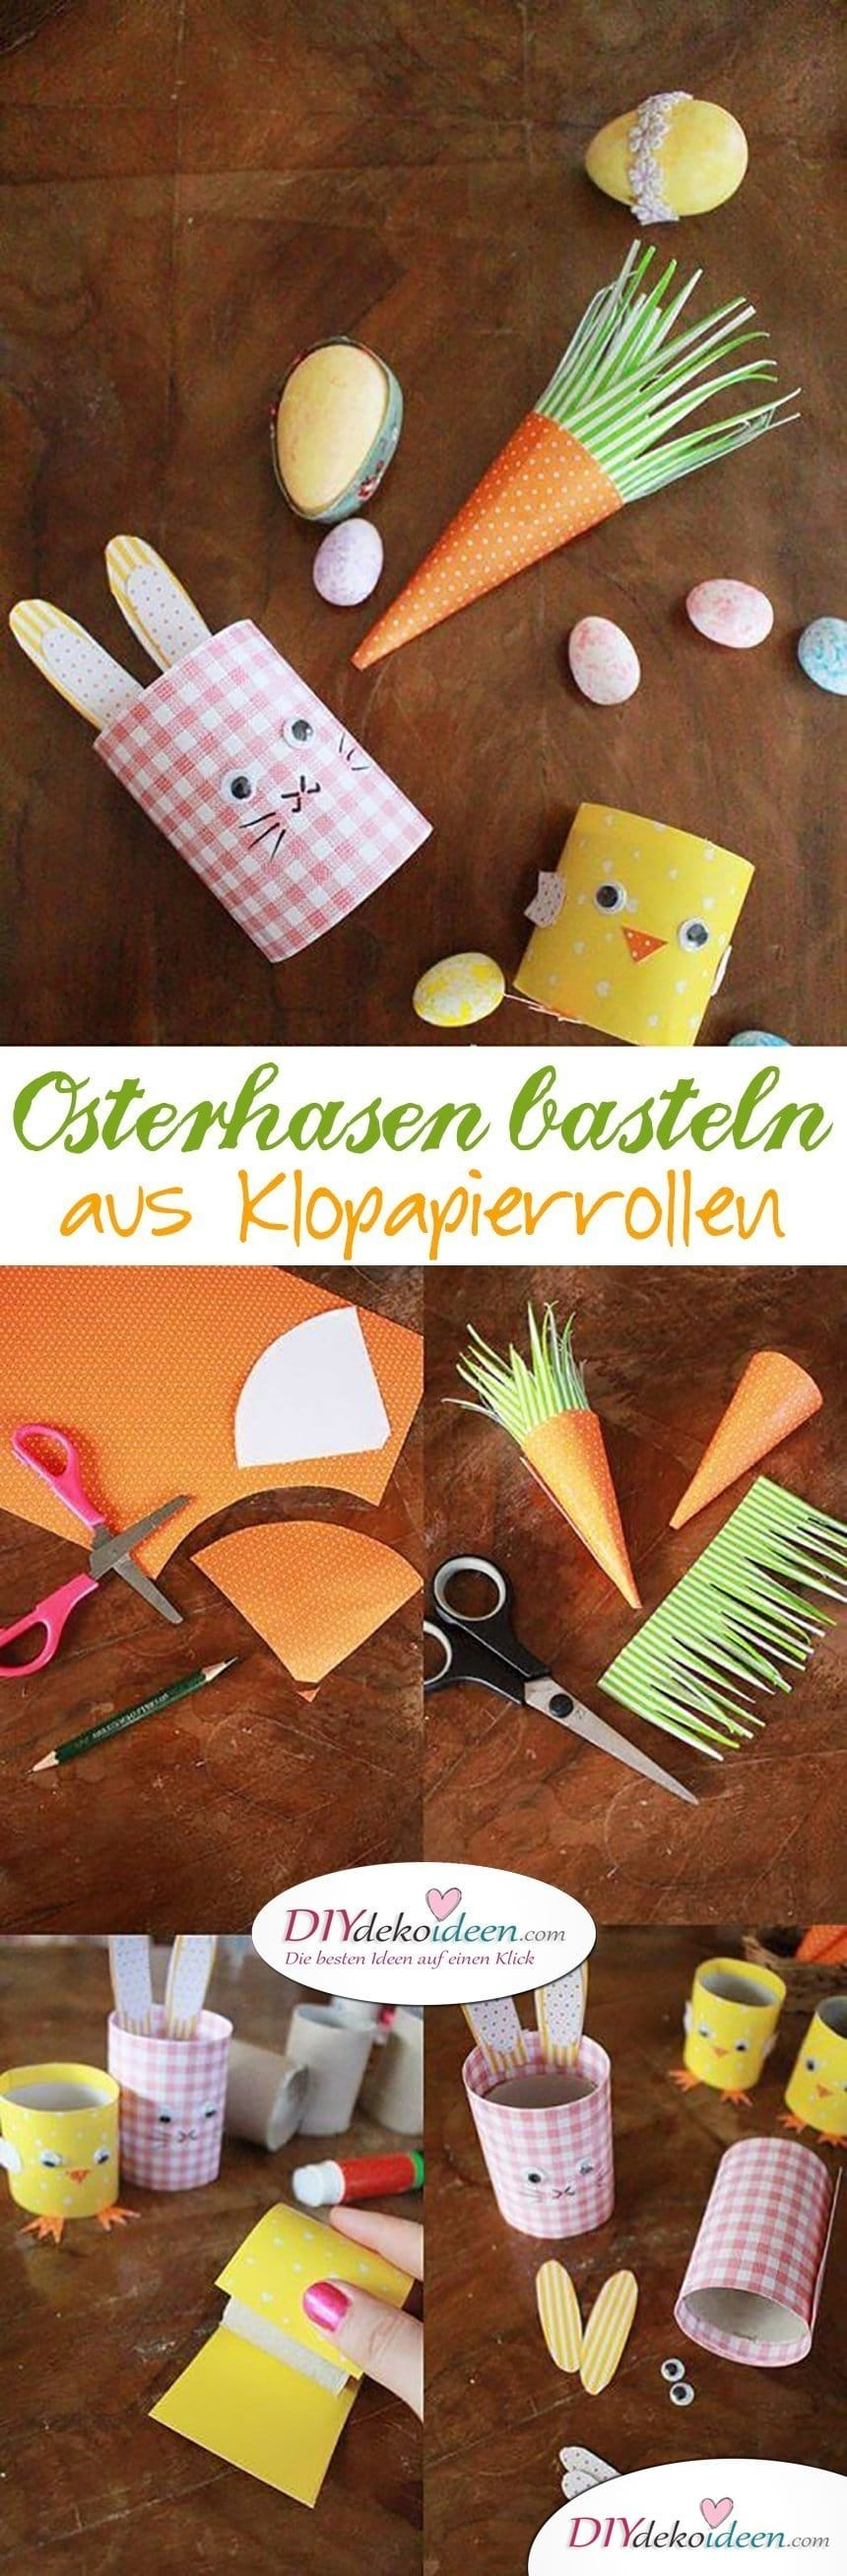 diy ideen mit klopapierrollen osterhasen basteln mit. Black Bedroom Furniture Sets. Home Design Ideas